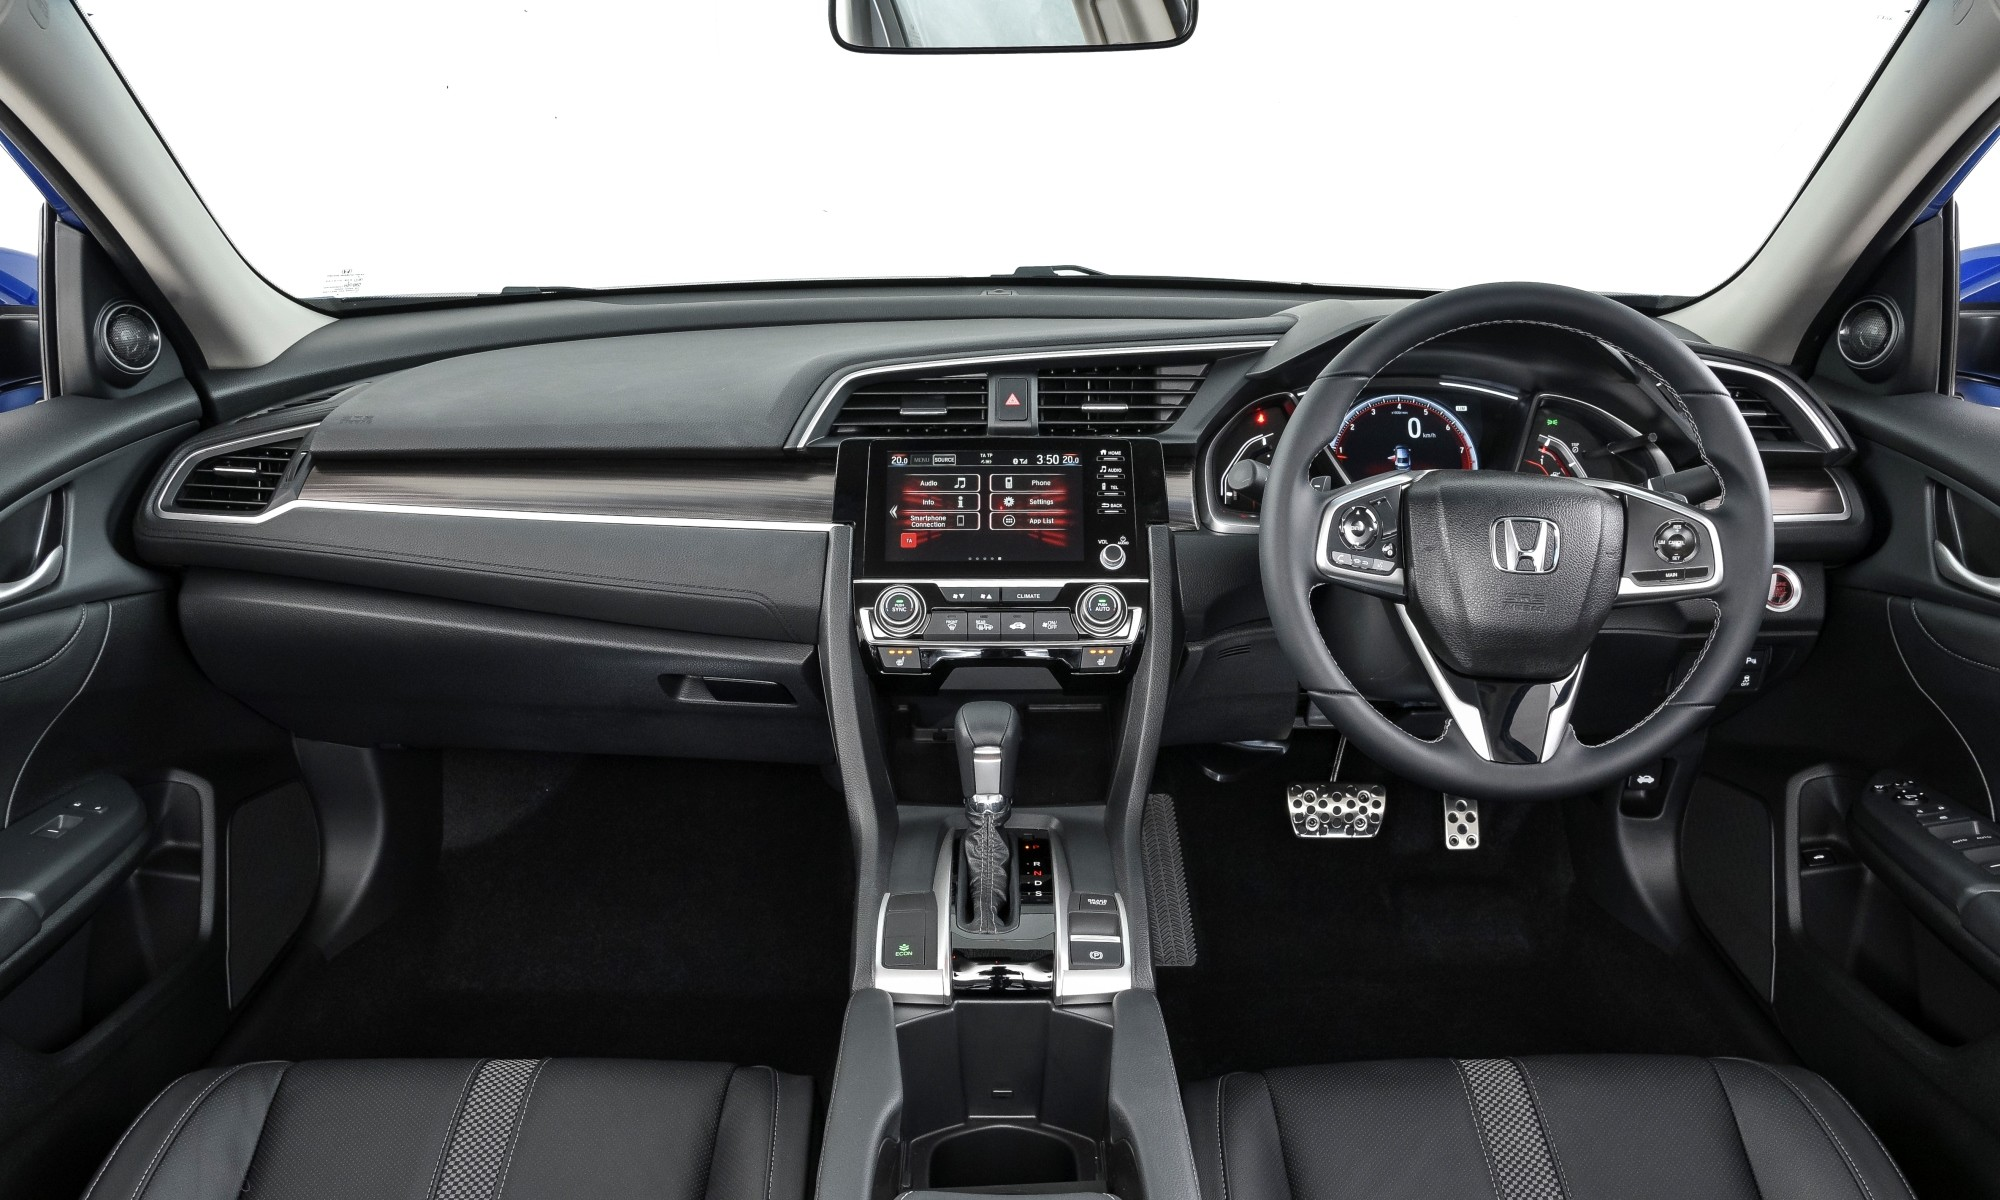 Facelifted Honda Civic interior